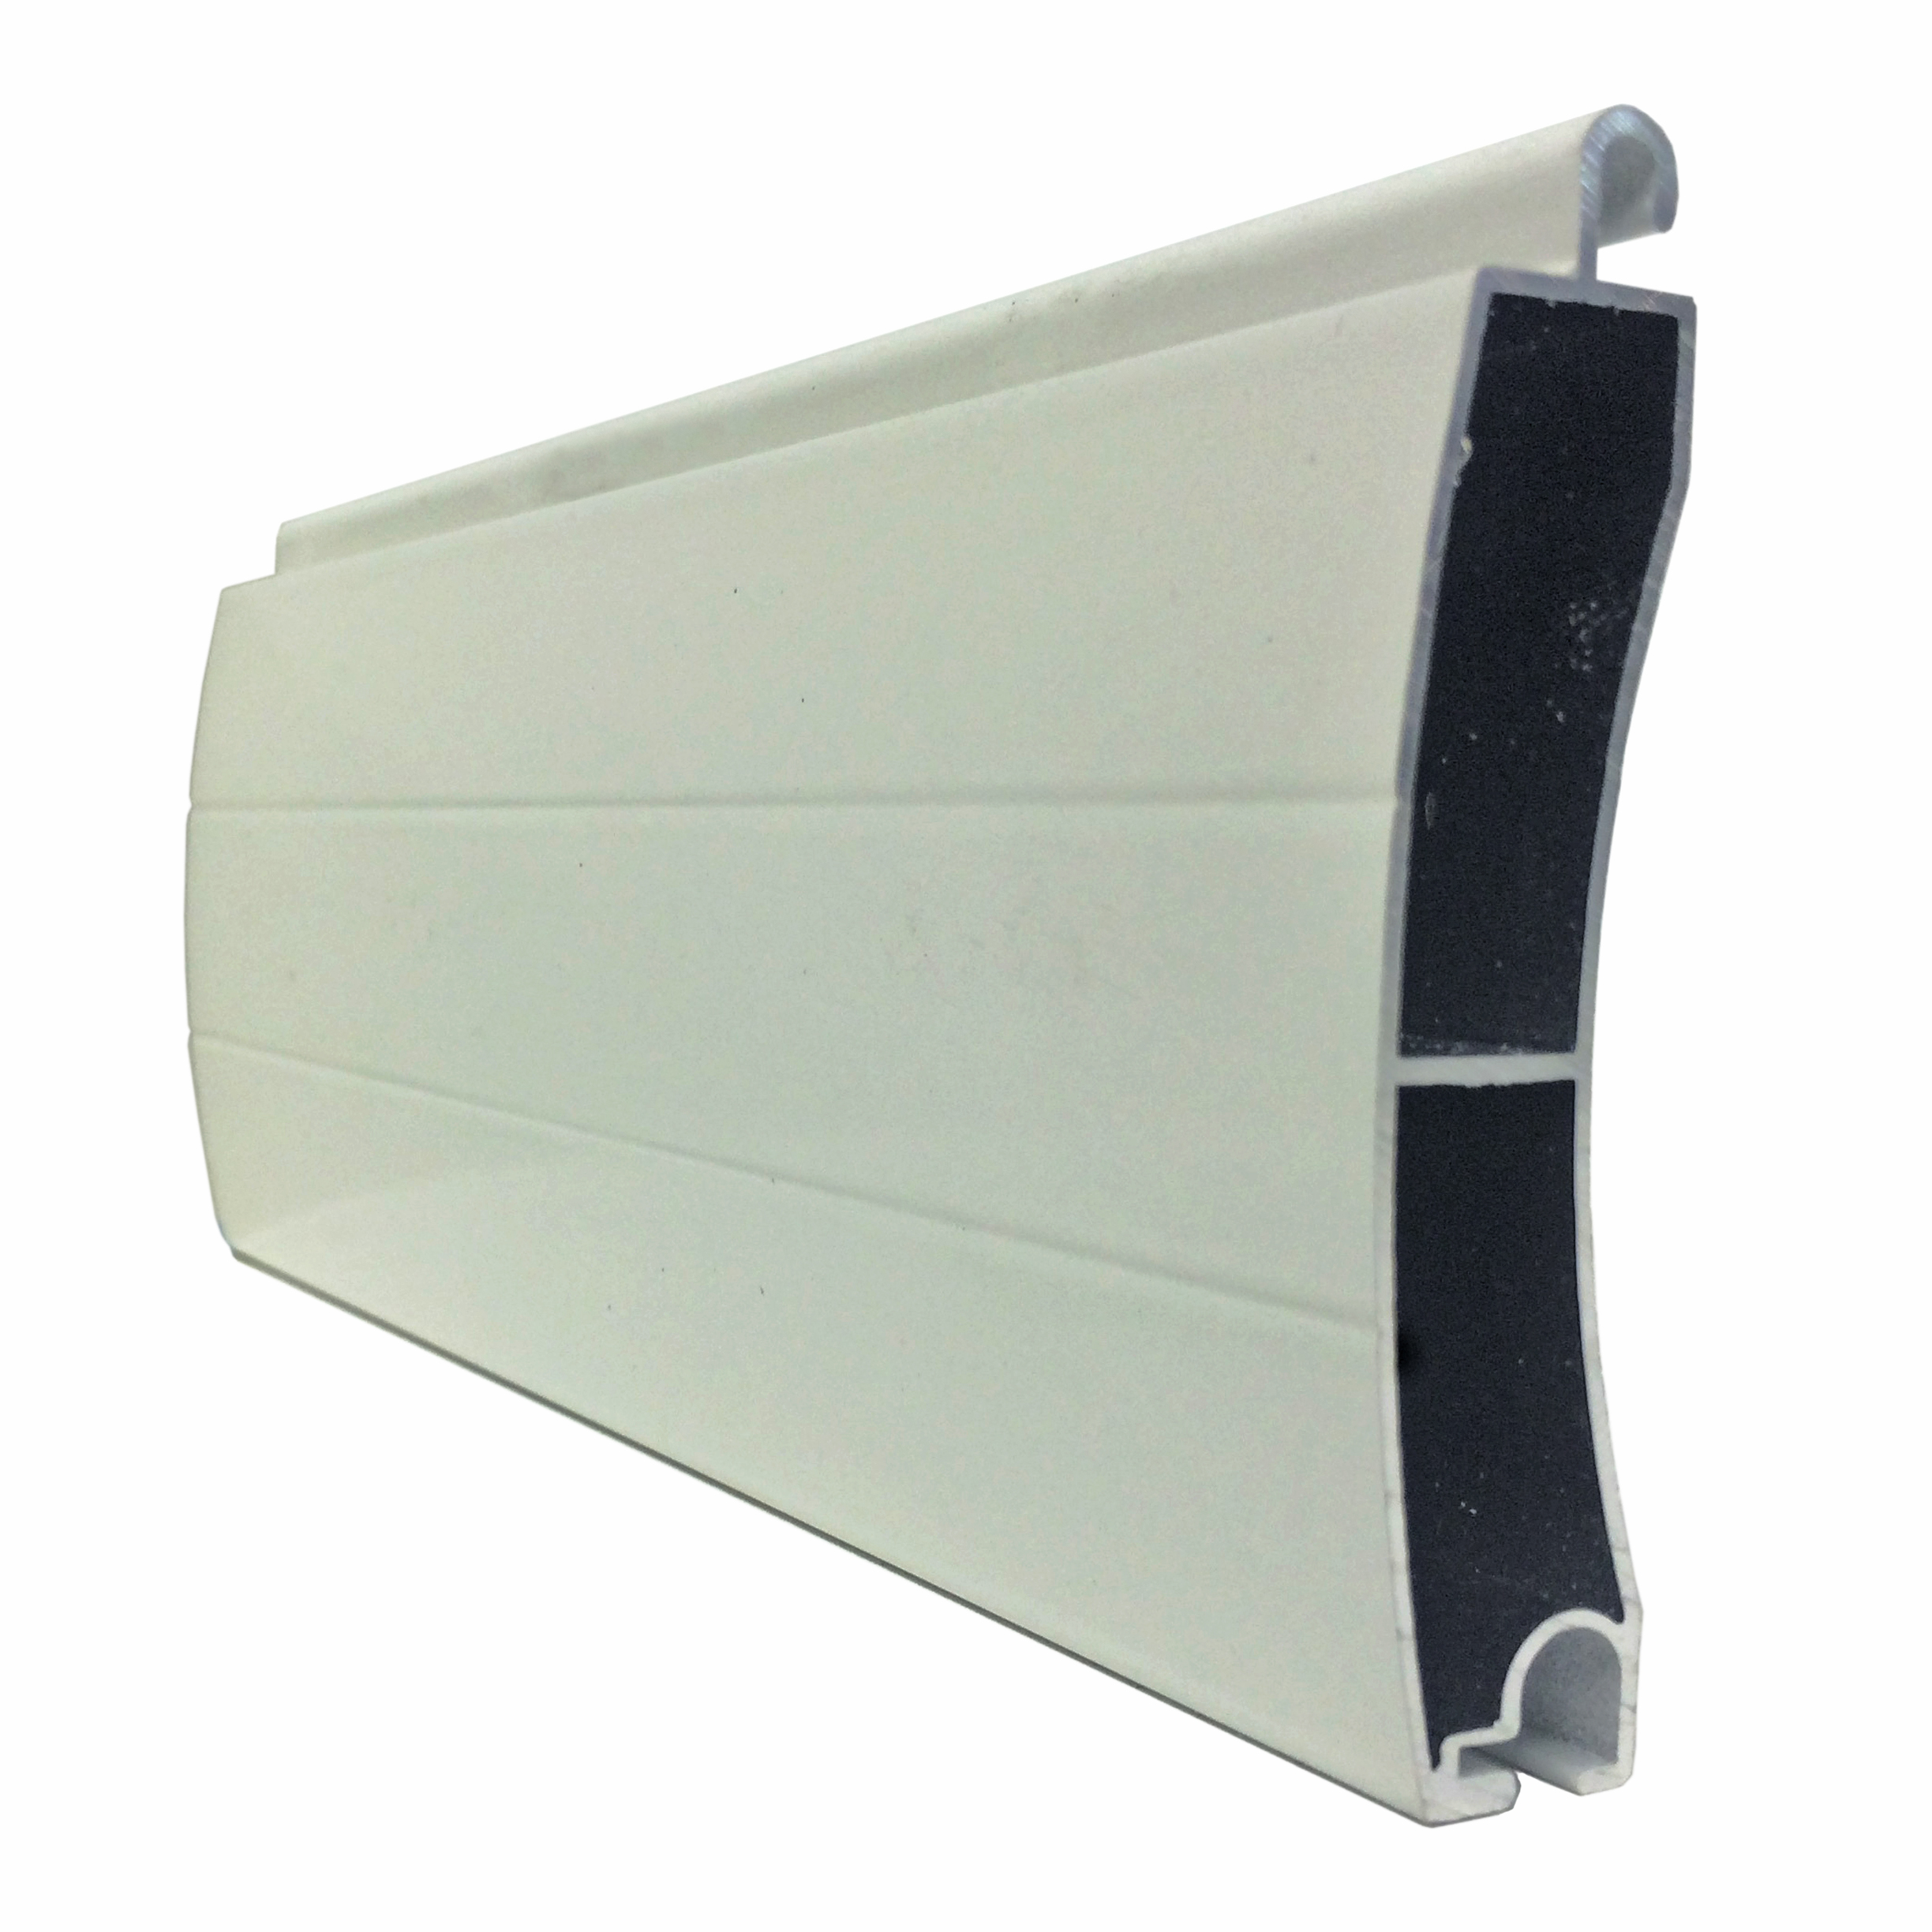 aluroll-e77-security-shutter-slat-profile